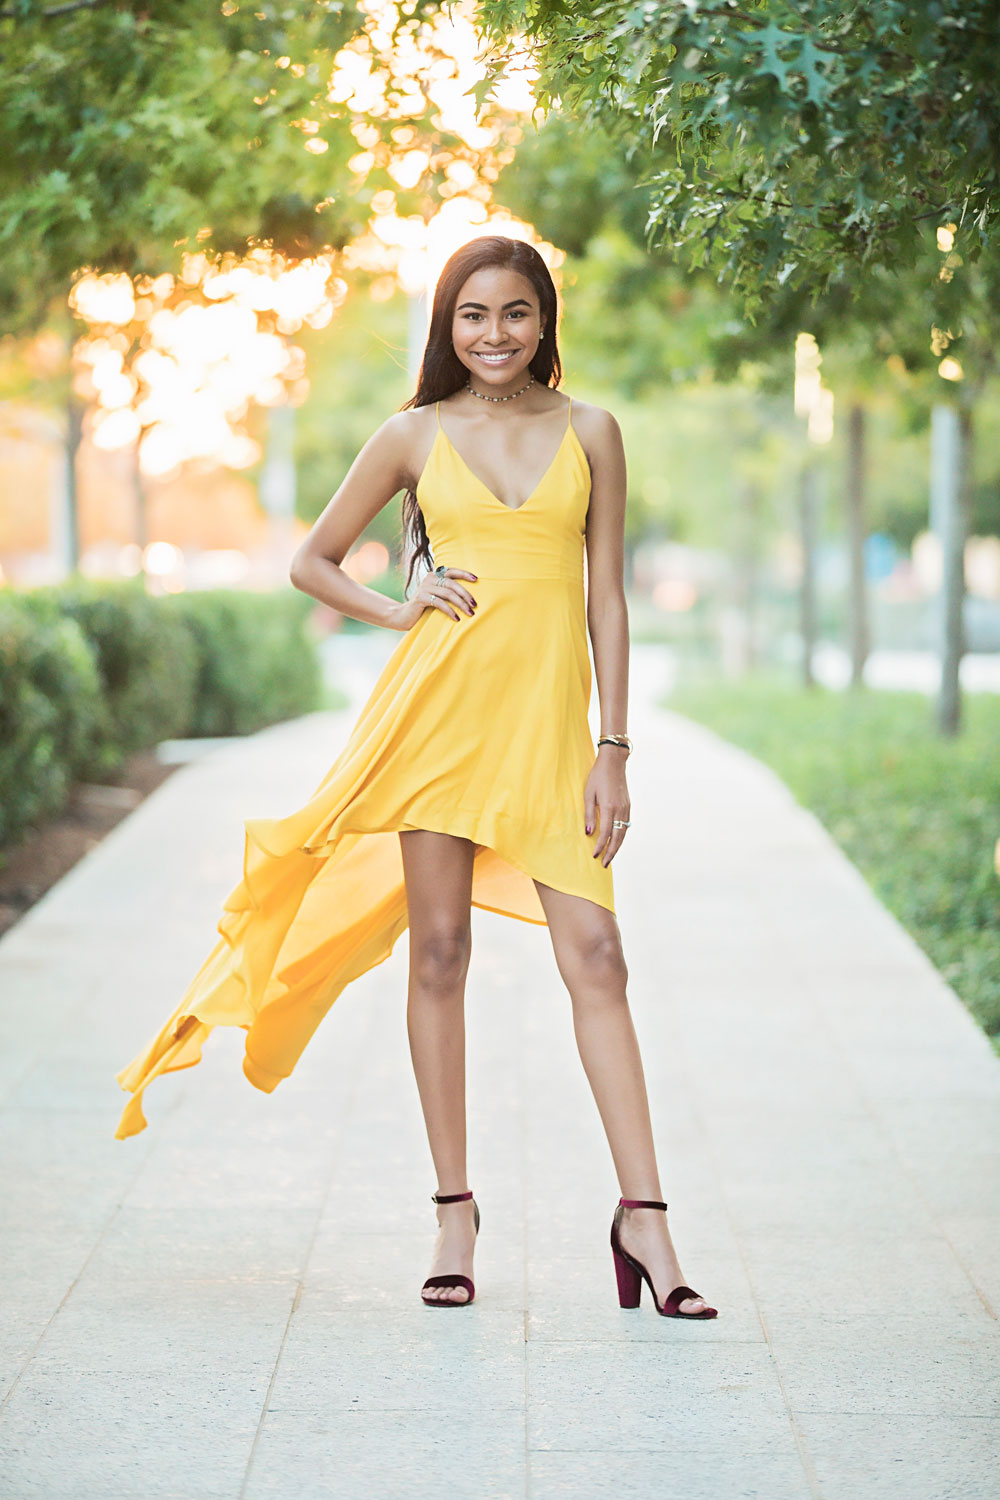 Senior girl wearing long yellow dress, standing on sidewalk with wind blowing dress at the Myriad Gardens in Oklahoma City.